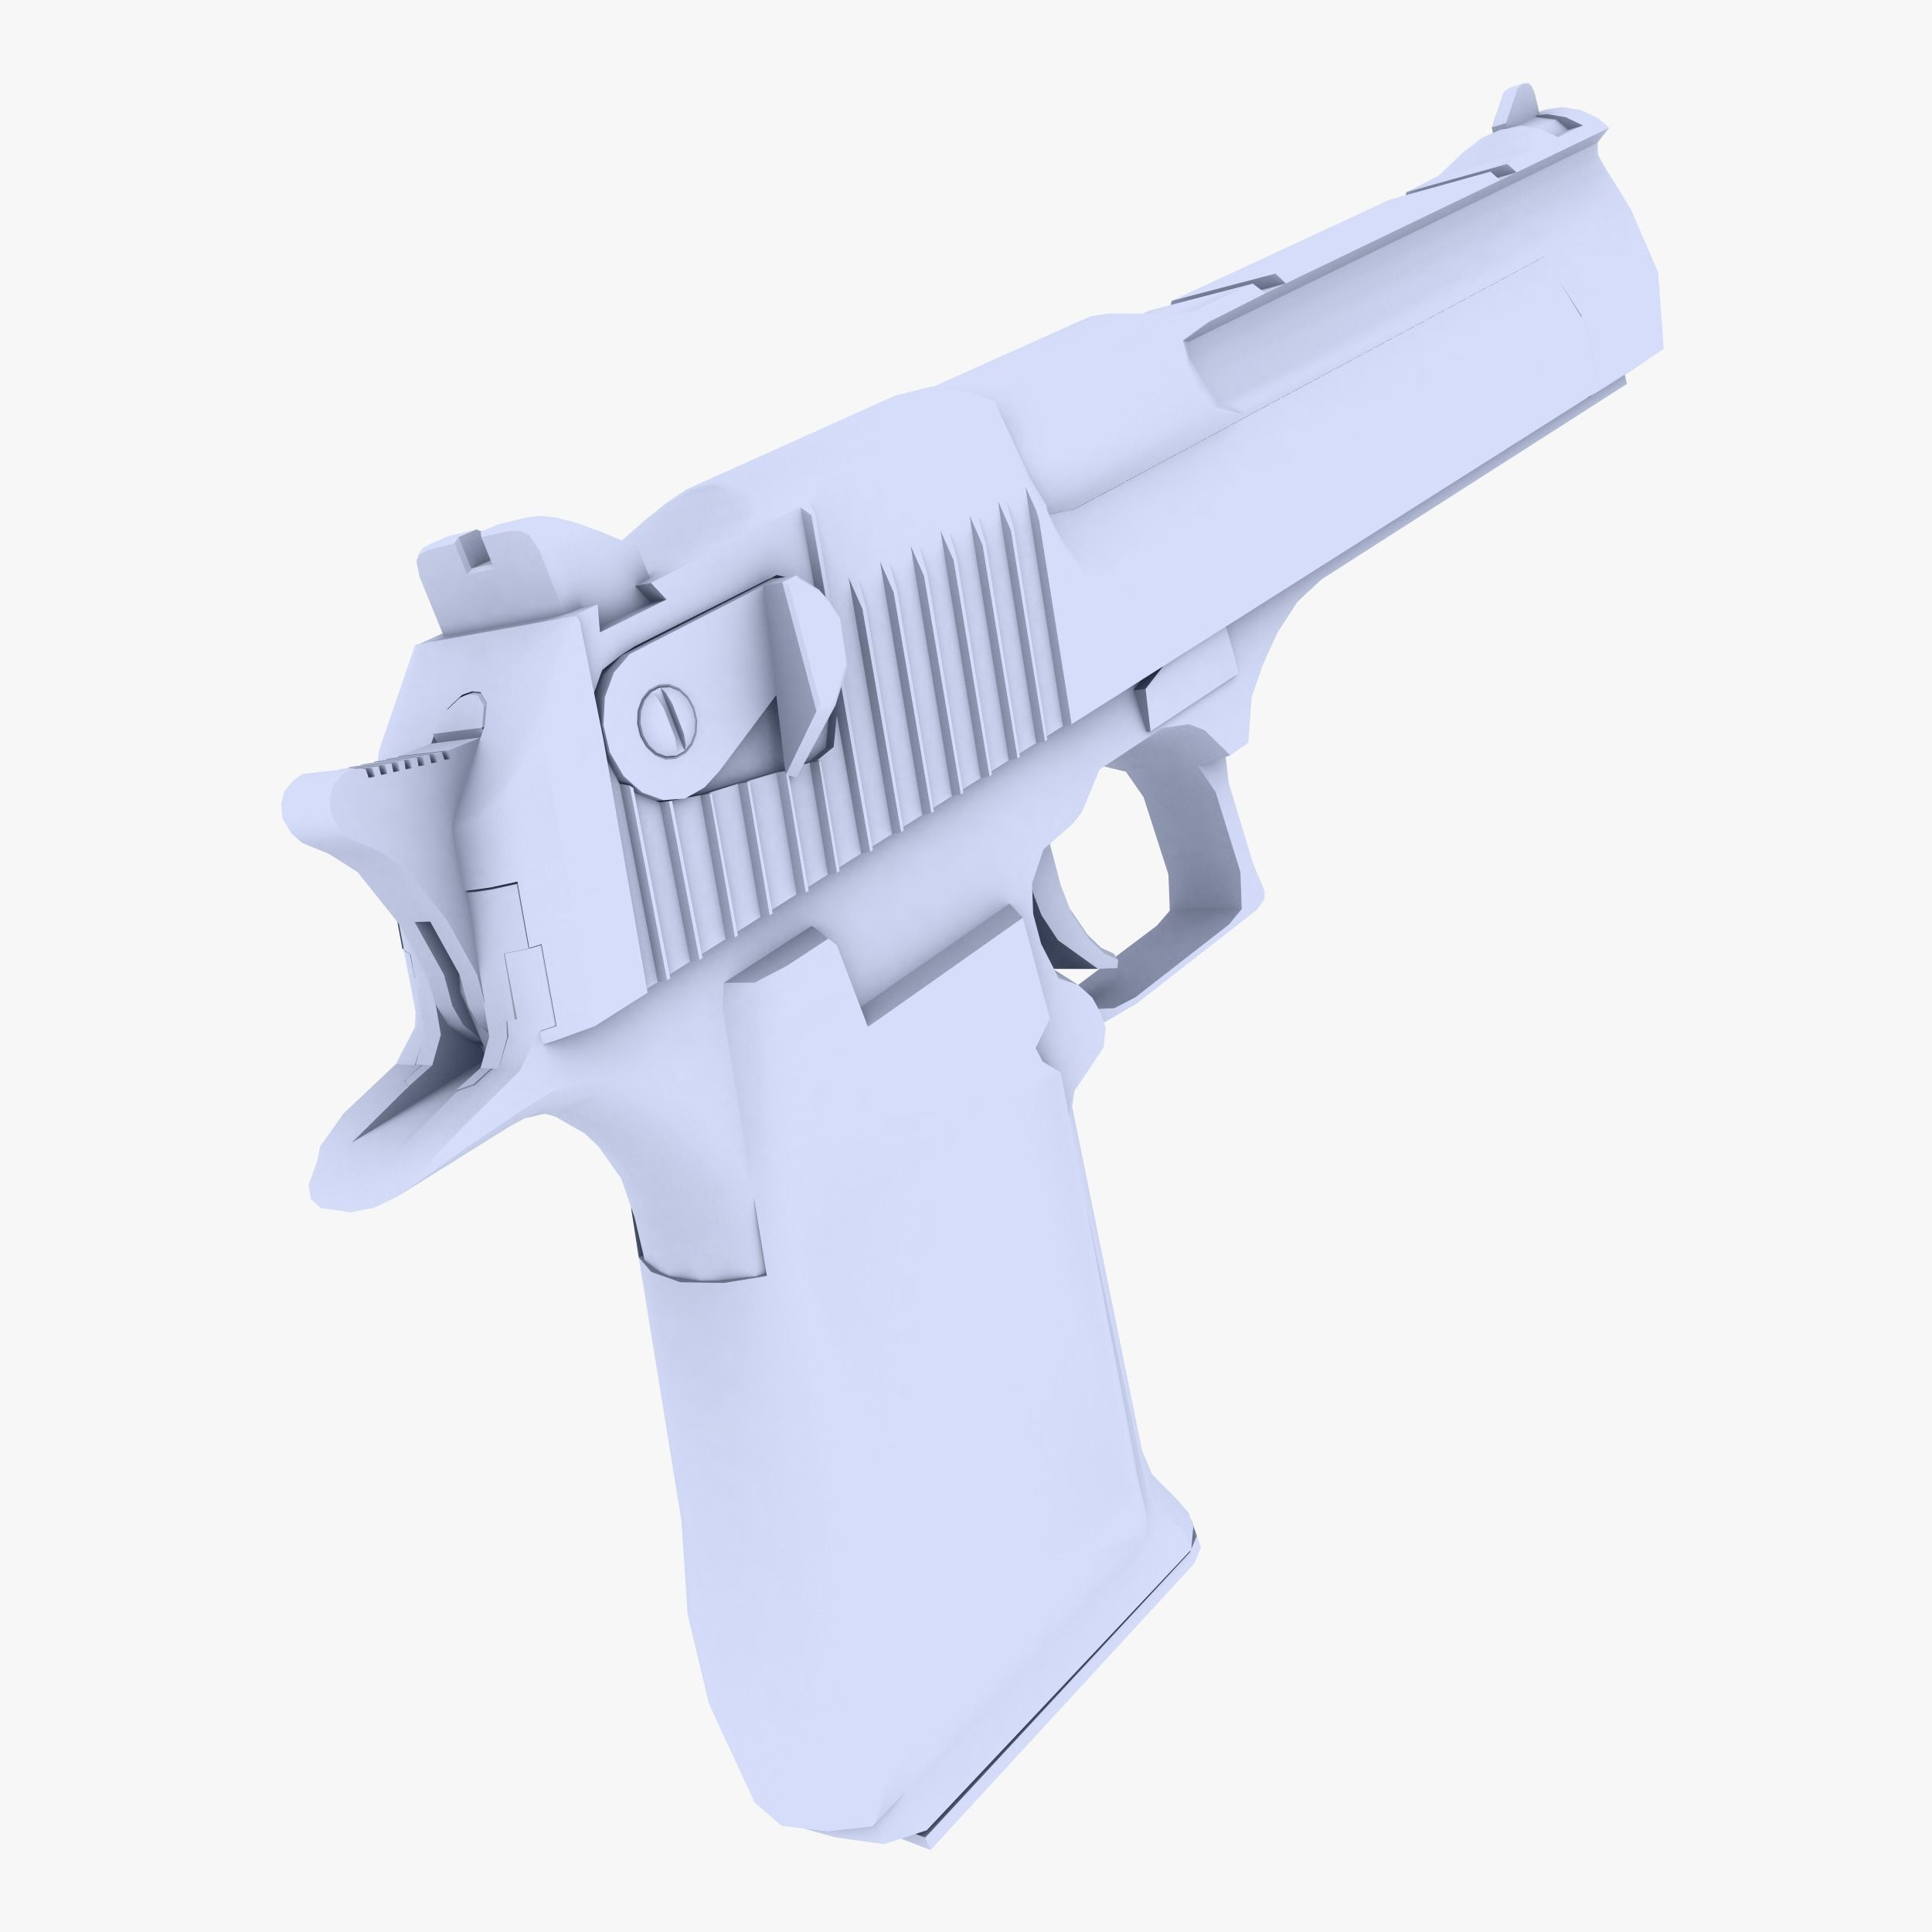 3D Desert Eagle   CGTrader likewise Desert Eagle 3D Model in Pistol3DExport together with Desert Eagle Pistol 3D asset   CGTrader besides Desert Eagle   CGTrader in addition Desert Eagle 3D Models for Download   TurboSquid furthermore ArtStation   Desert Eagle  50 cal  Deagle   Midhun Raj besides Desert Eagle   3d model    obj   tga together with beretta desert eagle 3d model further Desert Eagle Pistol 3D Model in Pistol 3DExport also 3D model game ready Desert Eagle   CGTrader as well IMI Desert Eagle 3D model   Hum3D. on desert eagle 3d model